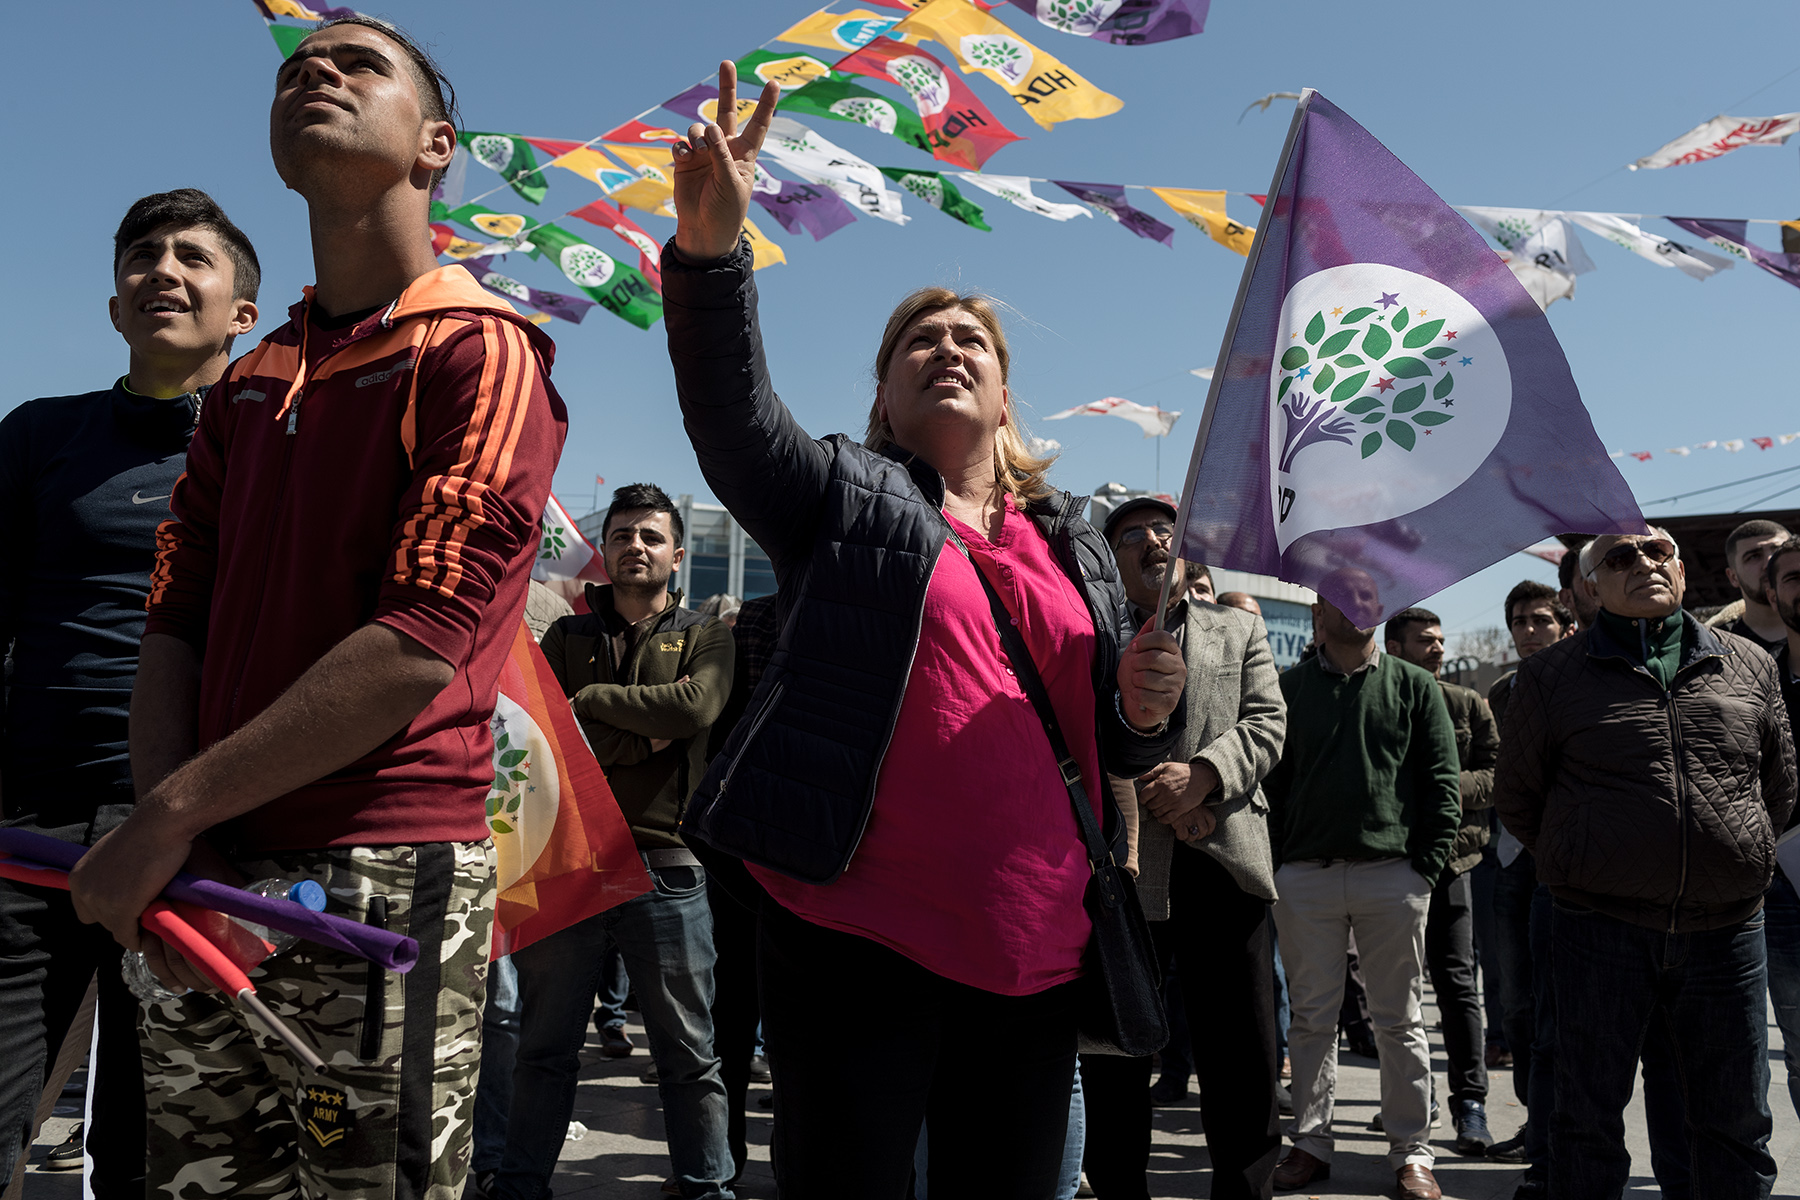 HDP supporters call for the release of Selahattin Demirtas during a rally against the referendum in Istanbul, Turkey on April 13, 2017. The pro-Kurdish leader risks up to 142 years imprisonment, accused of belonging to PKK, considered as a terrorism organisation.